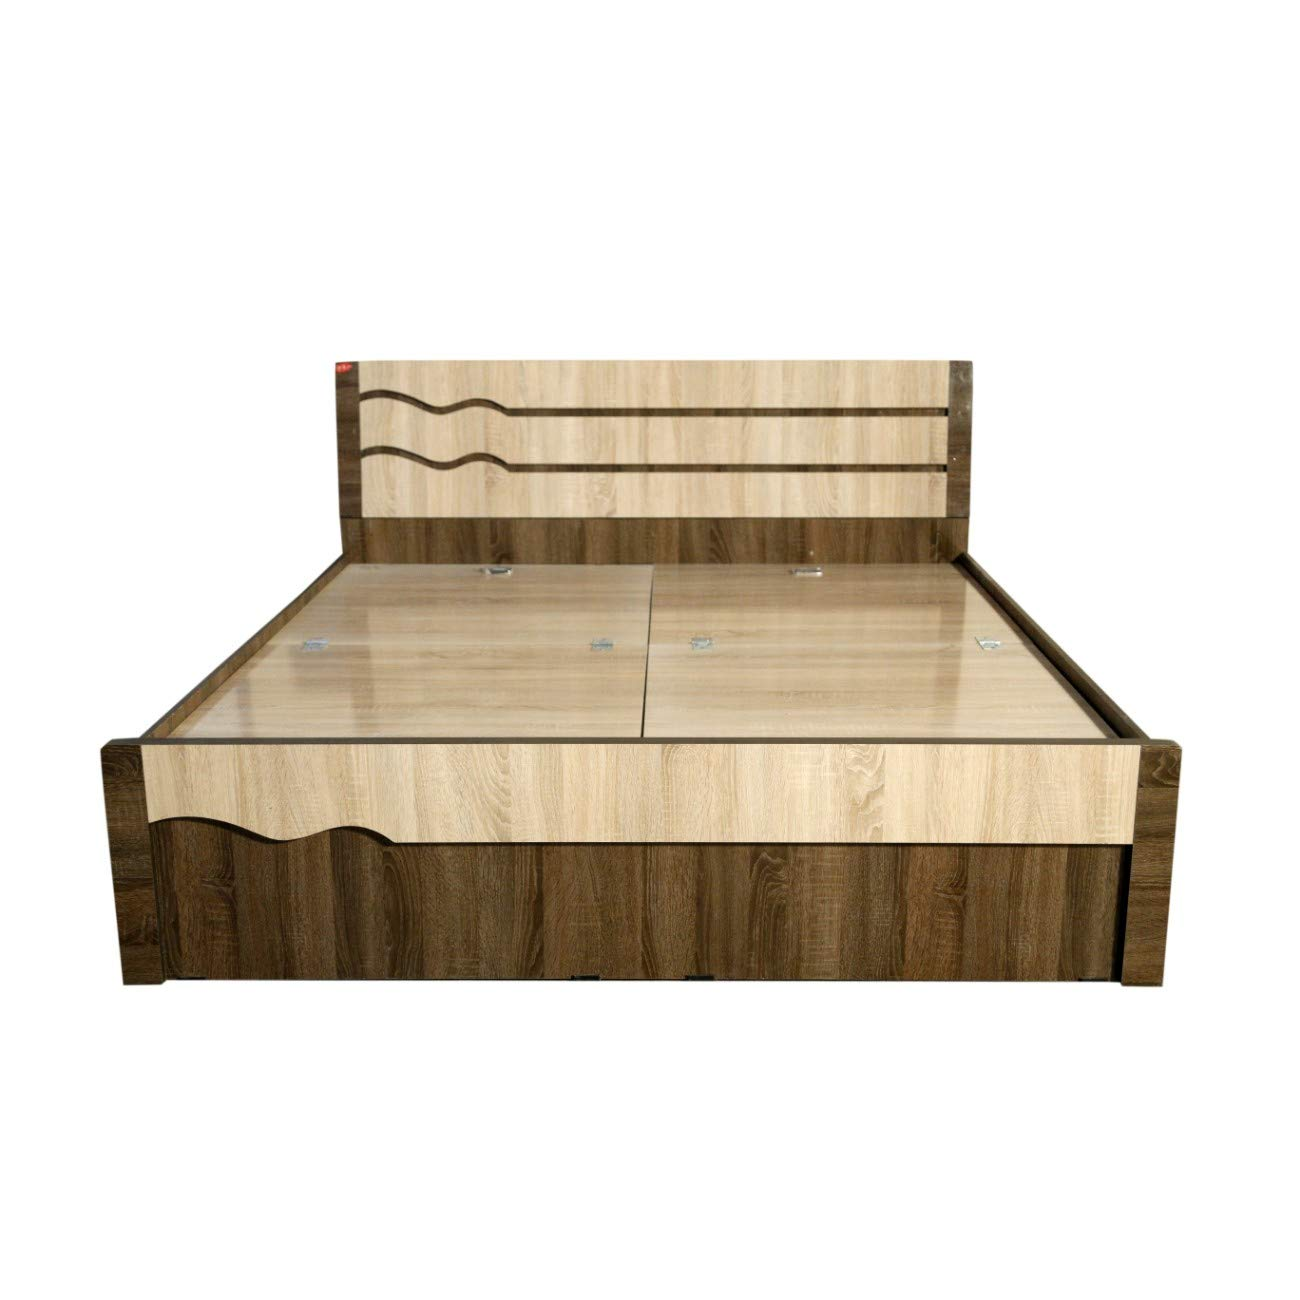 Dk furniture engineered wood three waves queen bed box amazon in home kitchen